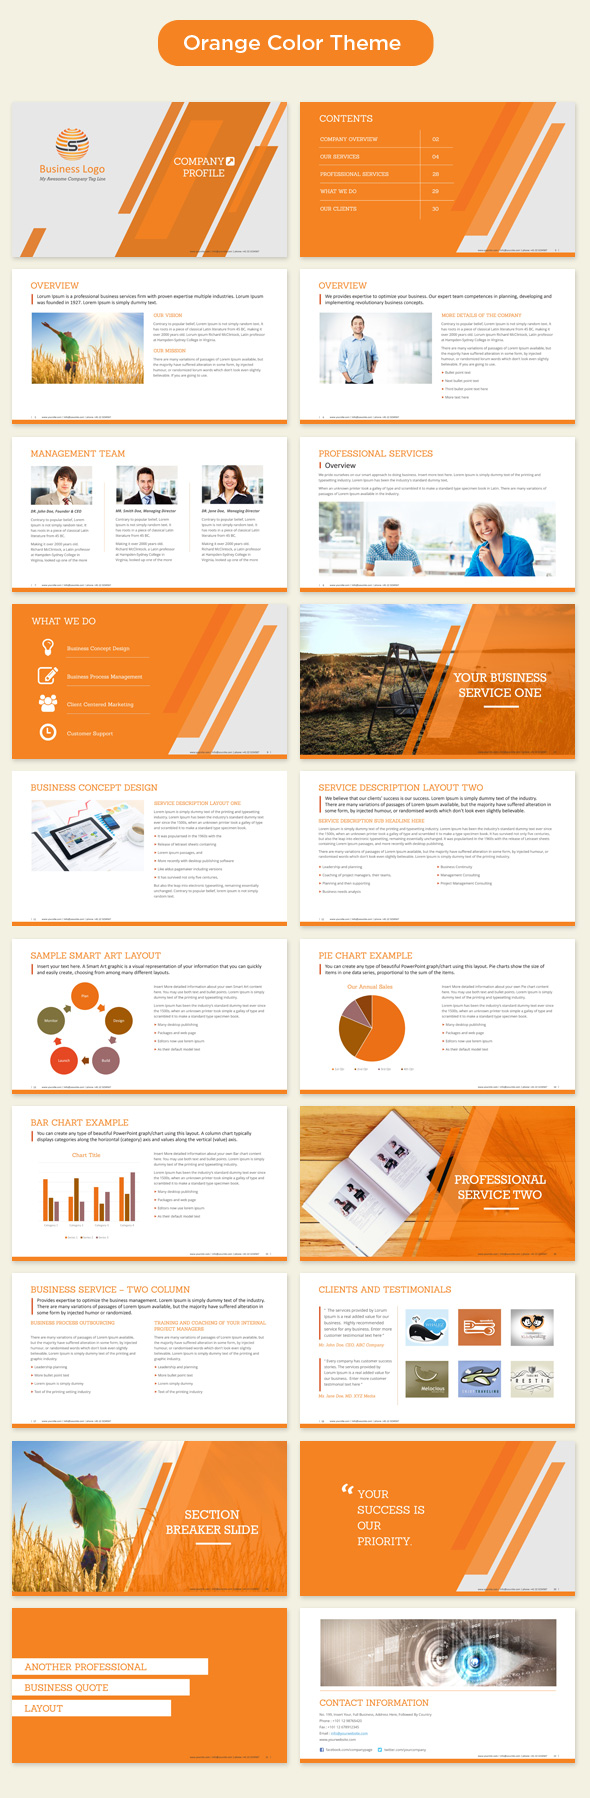 Company Profile Template Powerpoint Orange  Profile Templates